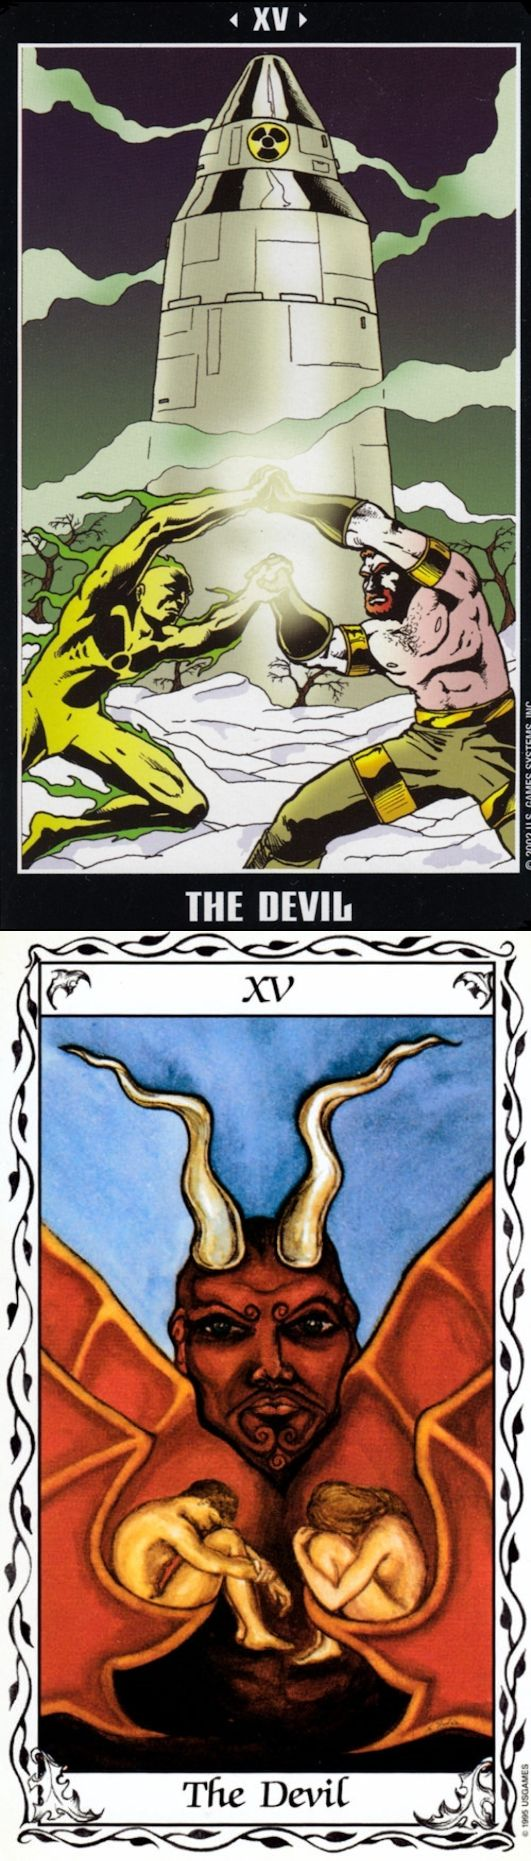 THE DEVIL: materialism and freedom (reverse). Adventure Tarot deck and Hudes Tarot deck: tarw dwrean, are tarot cards real vs best tarot card reading free online. Best 2017 tarot reading and tarot art vintage. #androidgame #tarotmeanings #goth